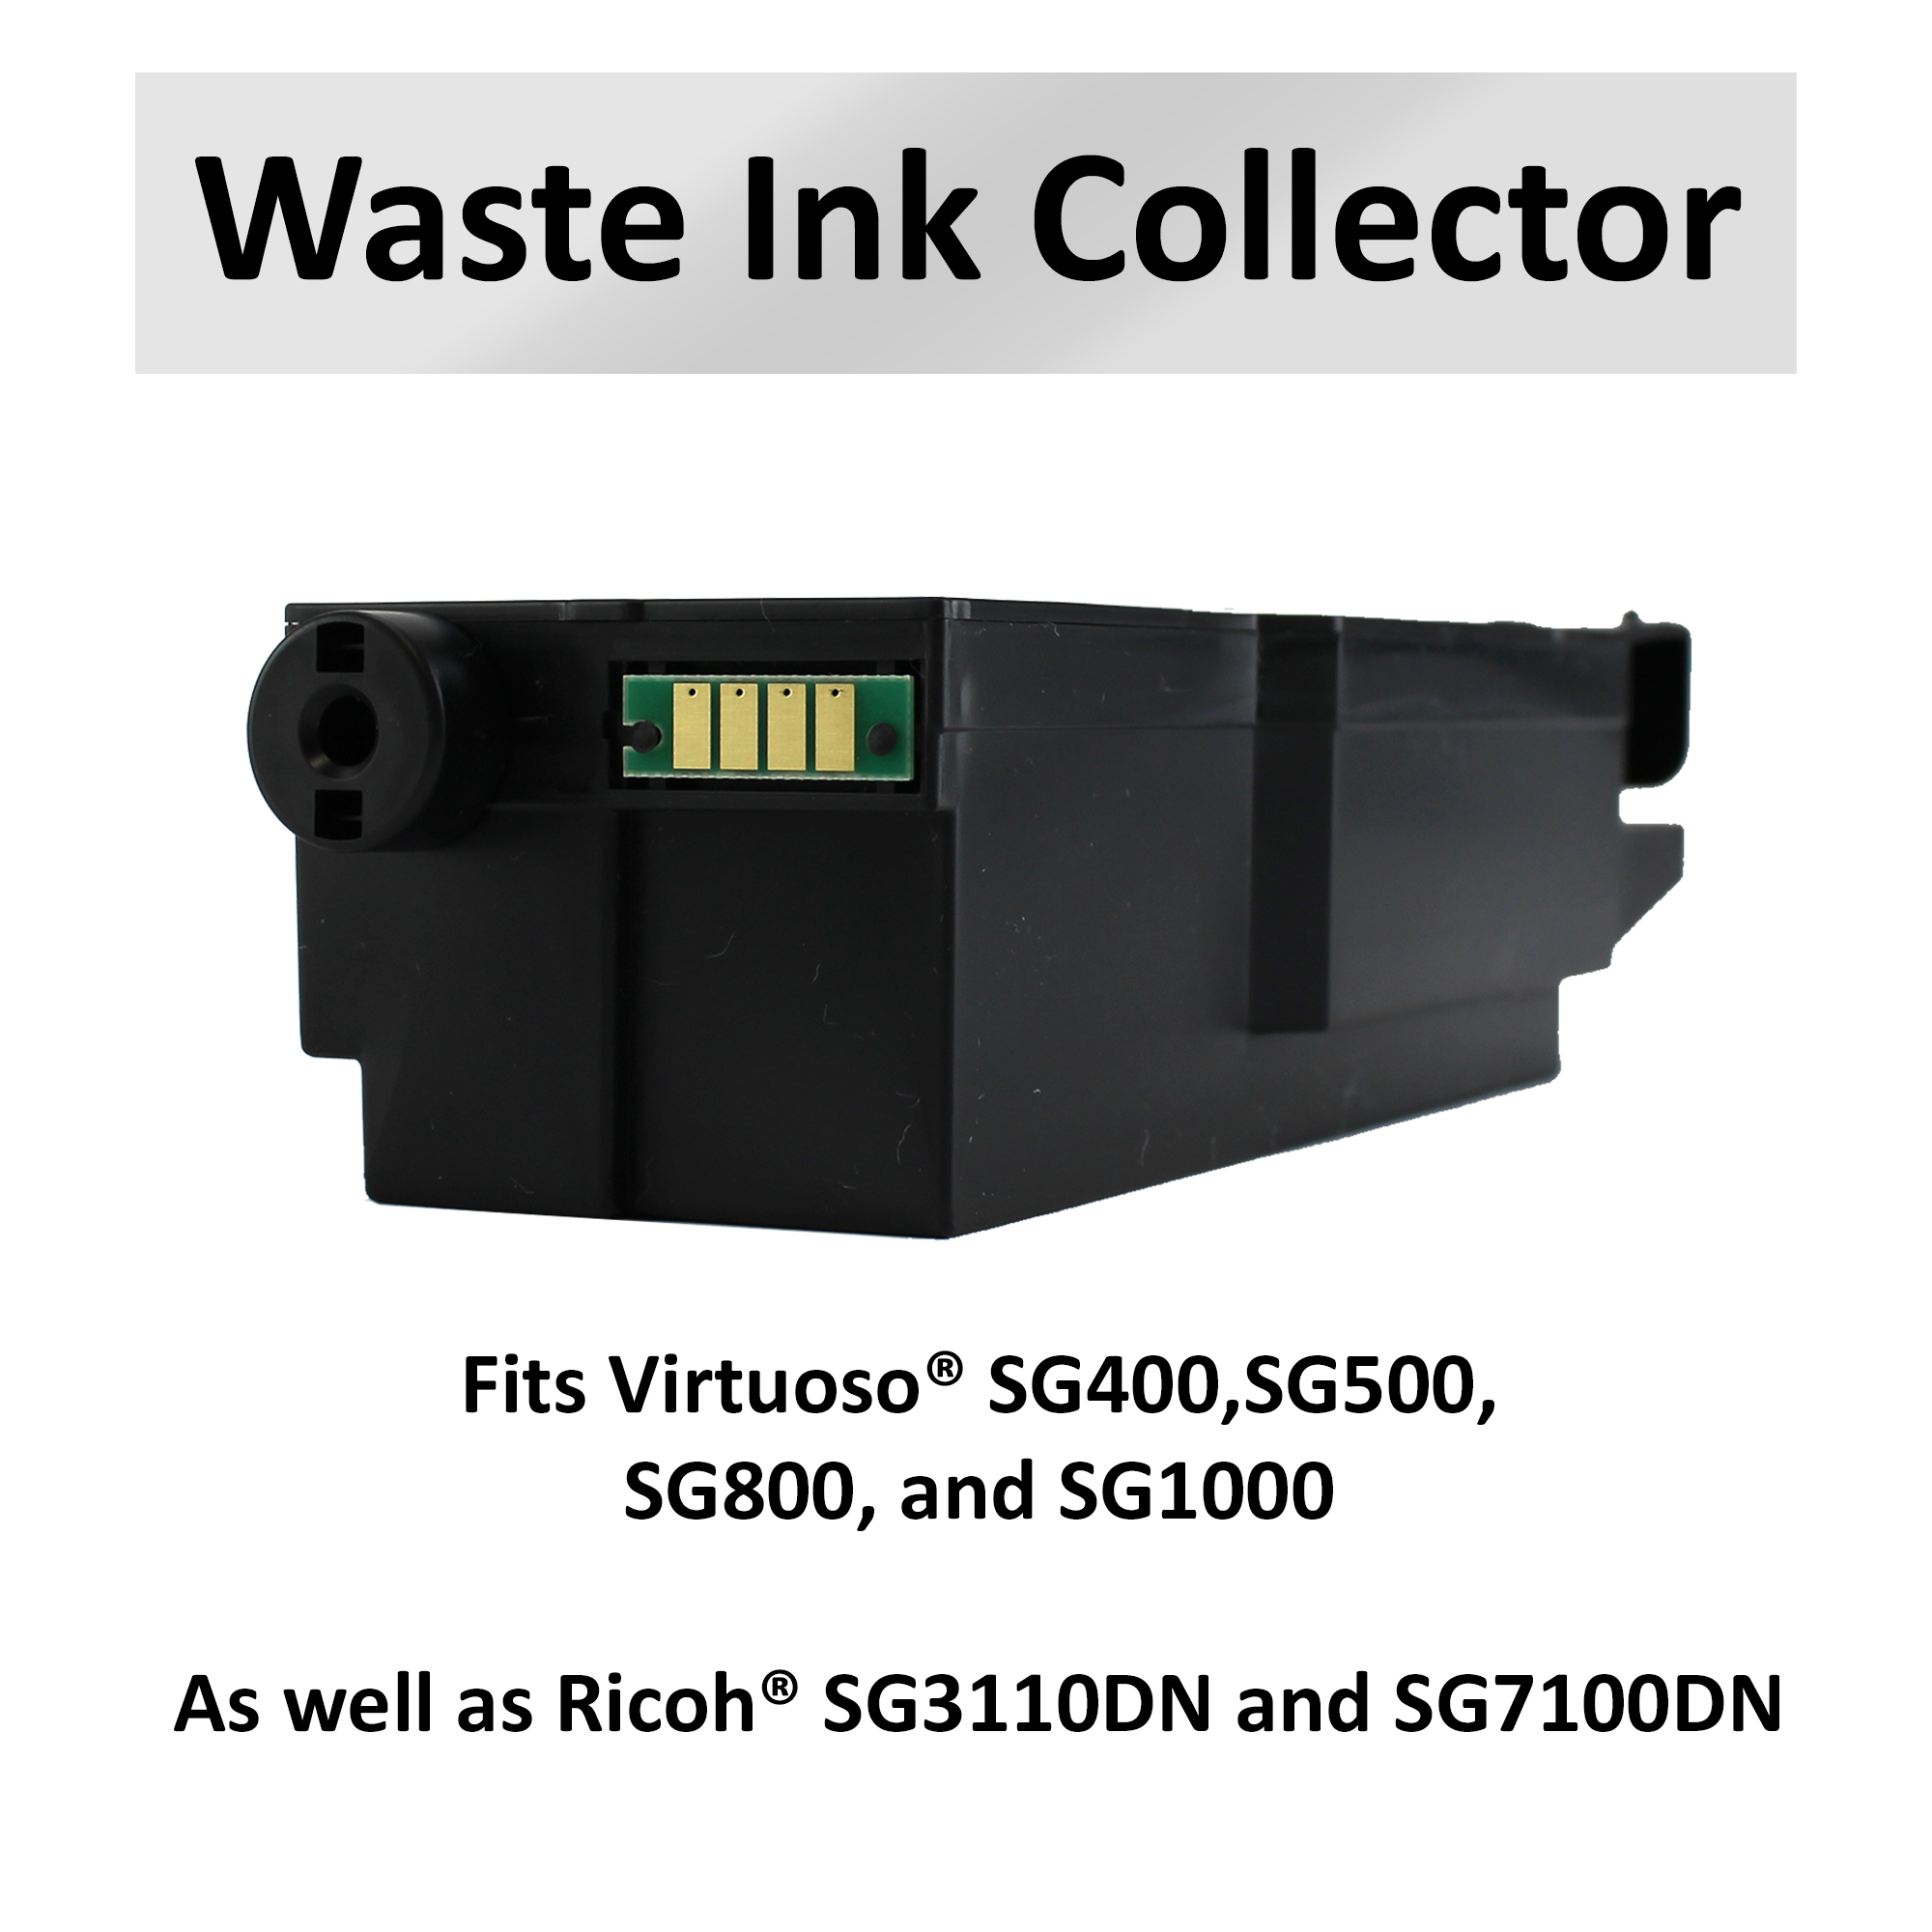 Virtuoso Waste Tank Ink Collection unit